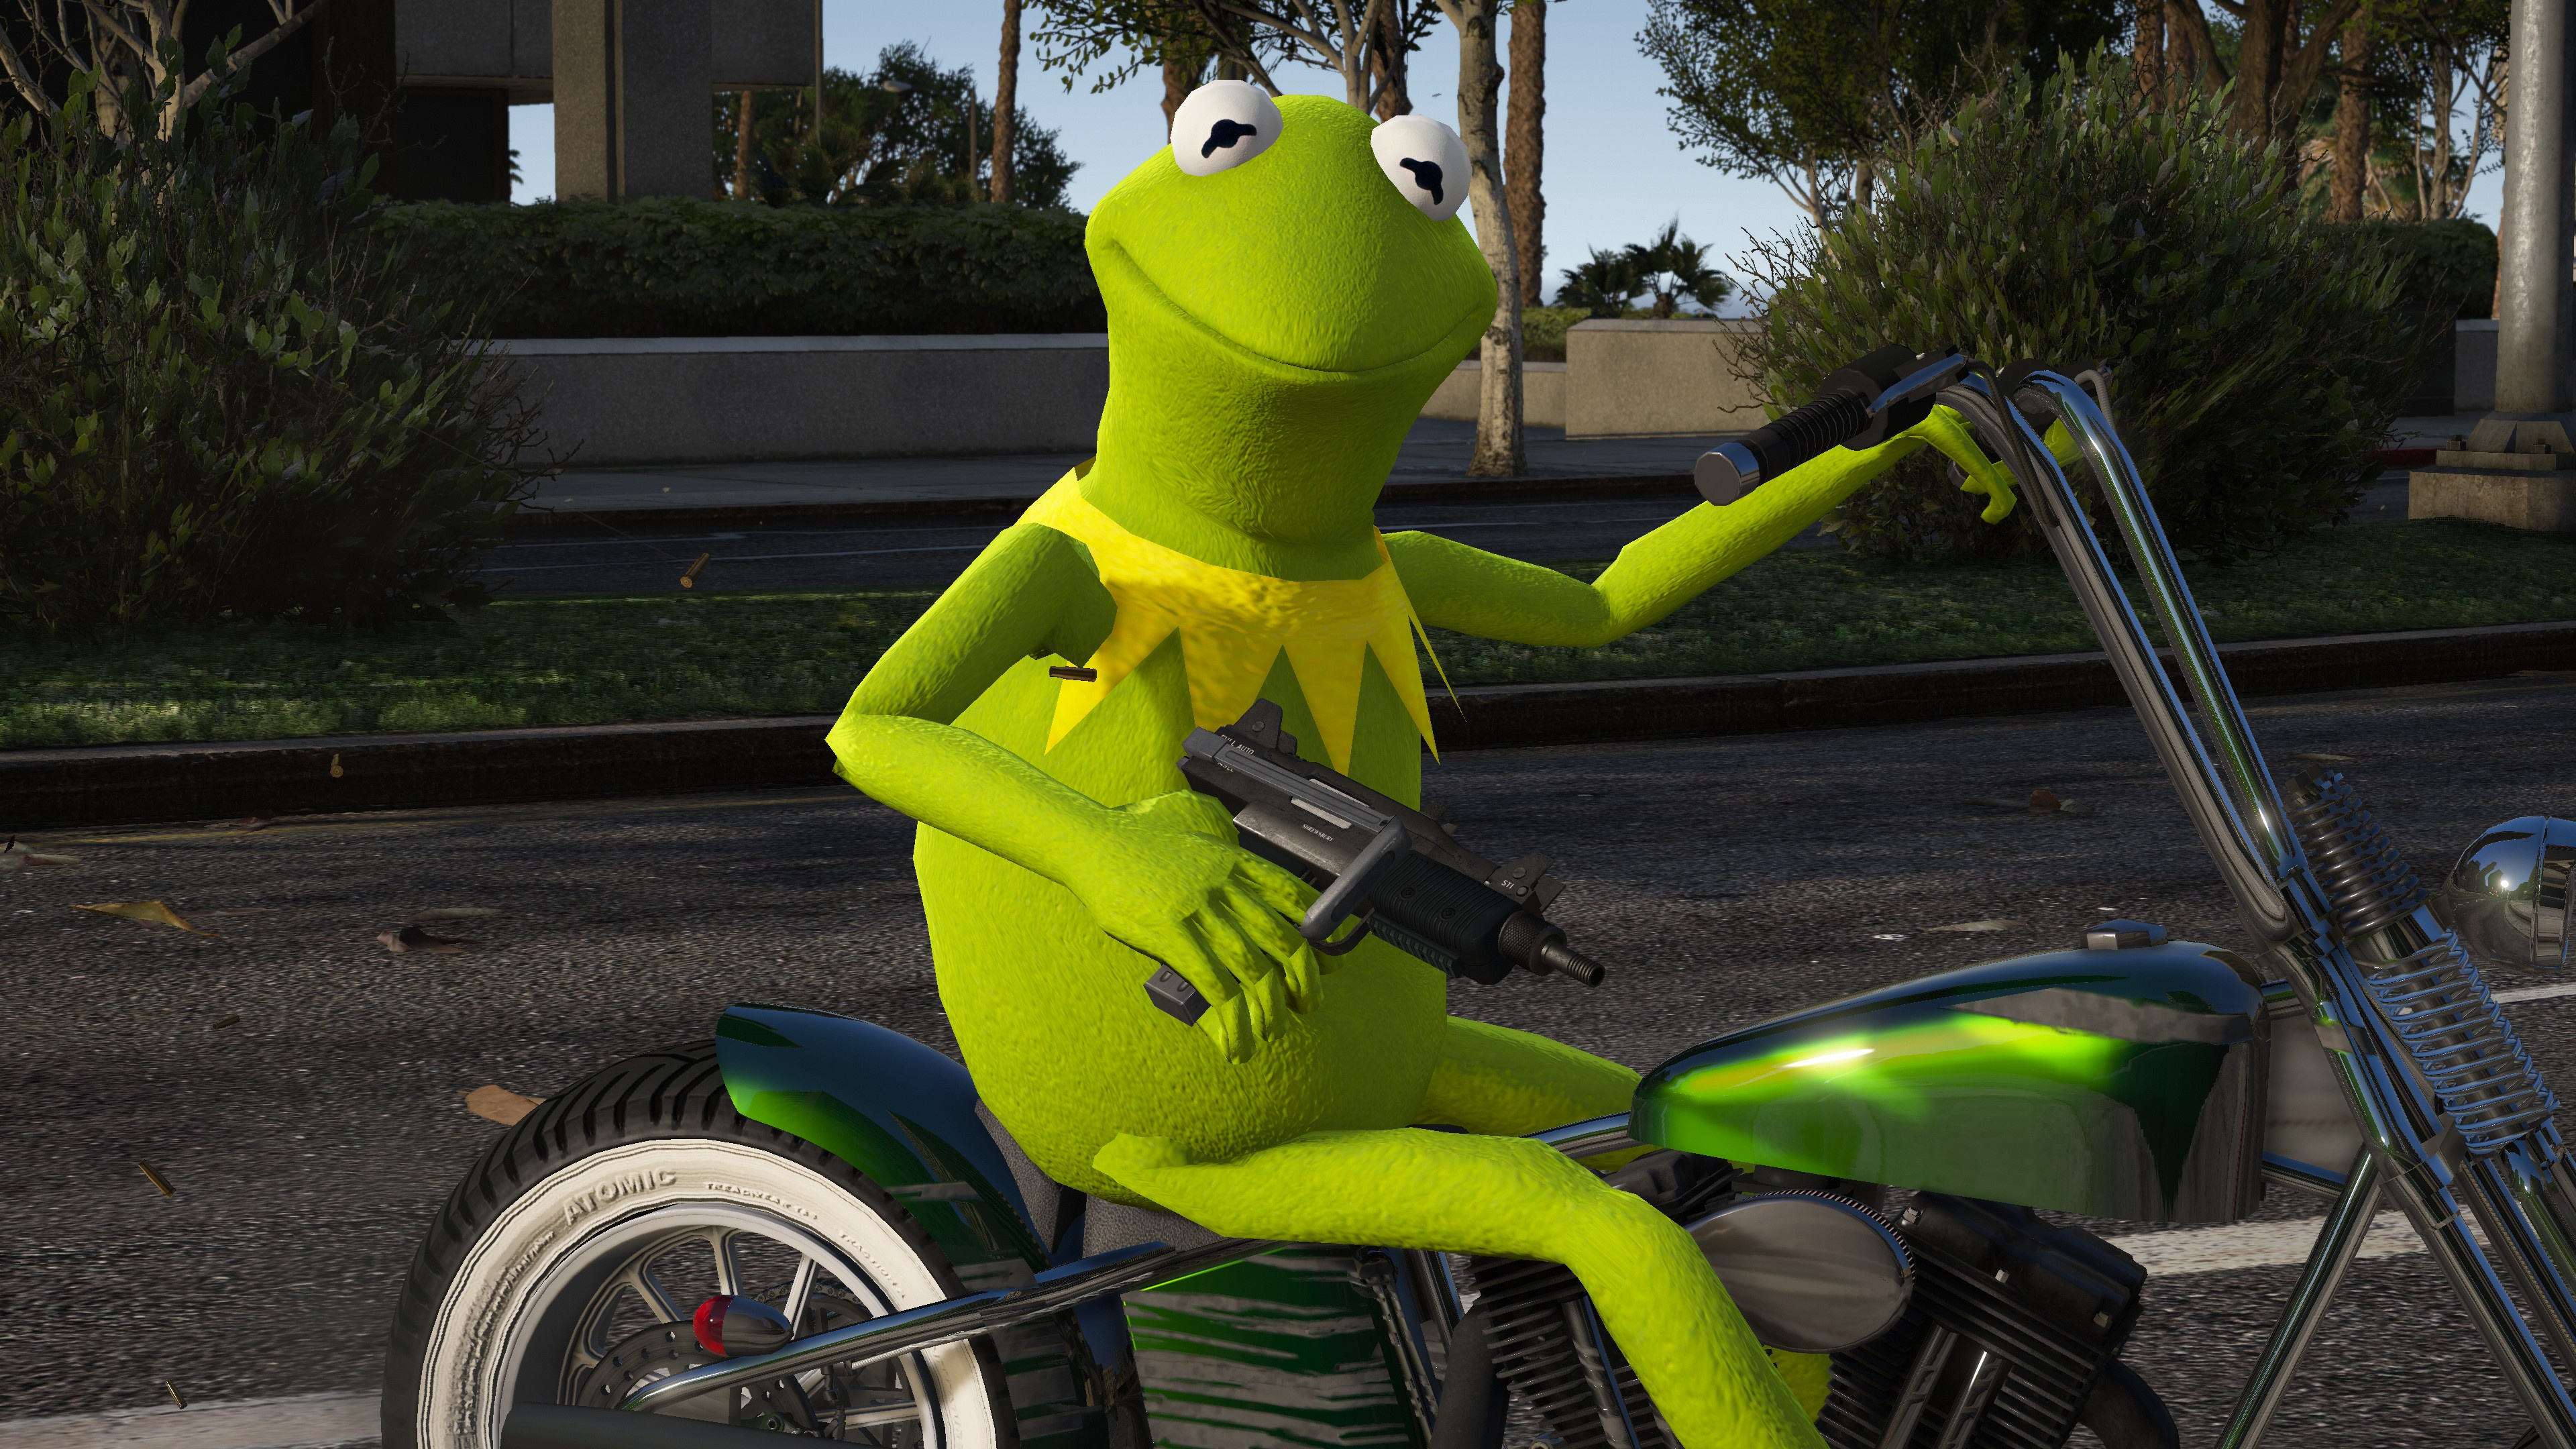 Kermit the Frog guest appearances - Muppet Wiki